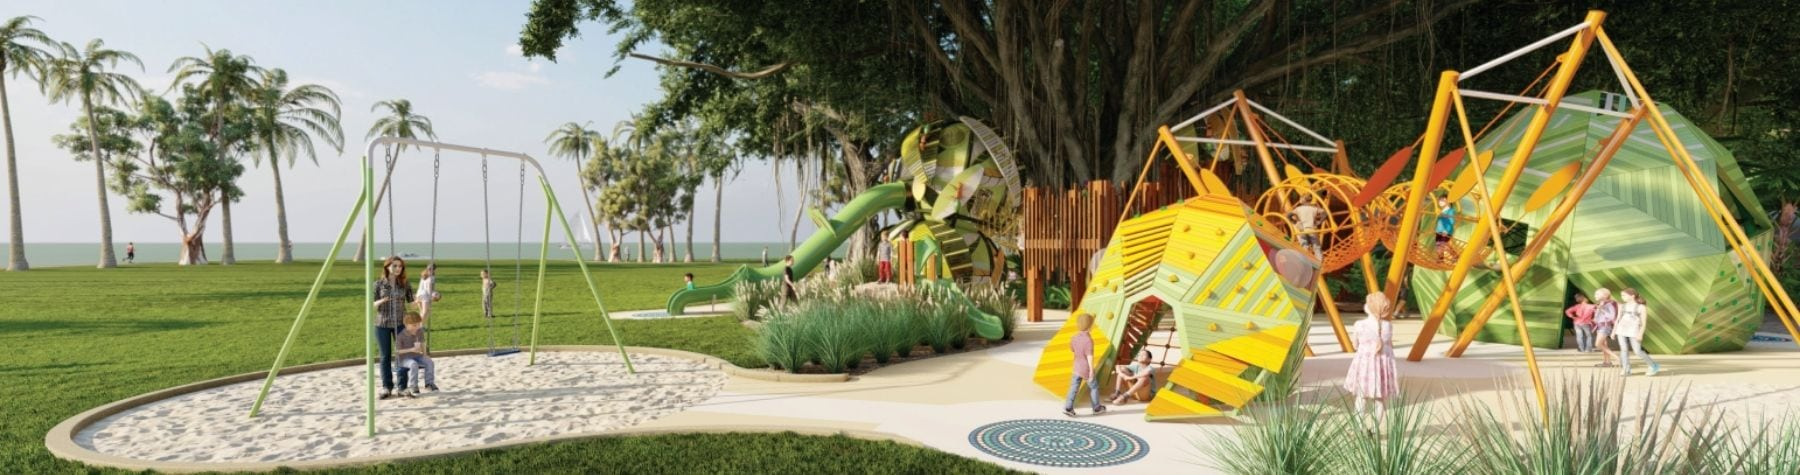 Green Ant adventure playground concept released for consultation